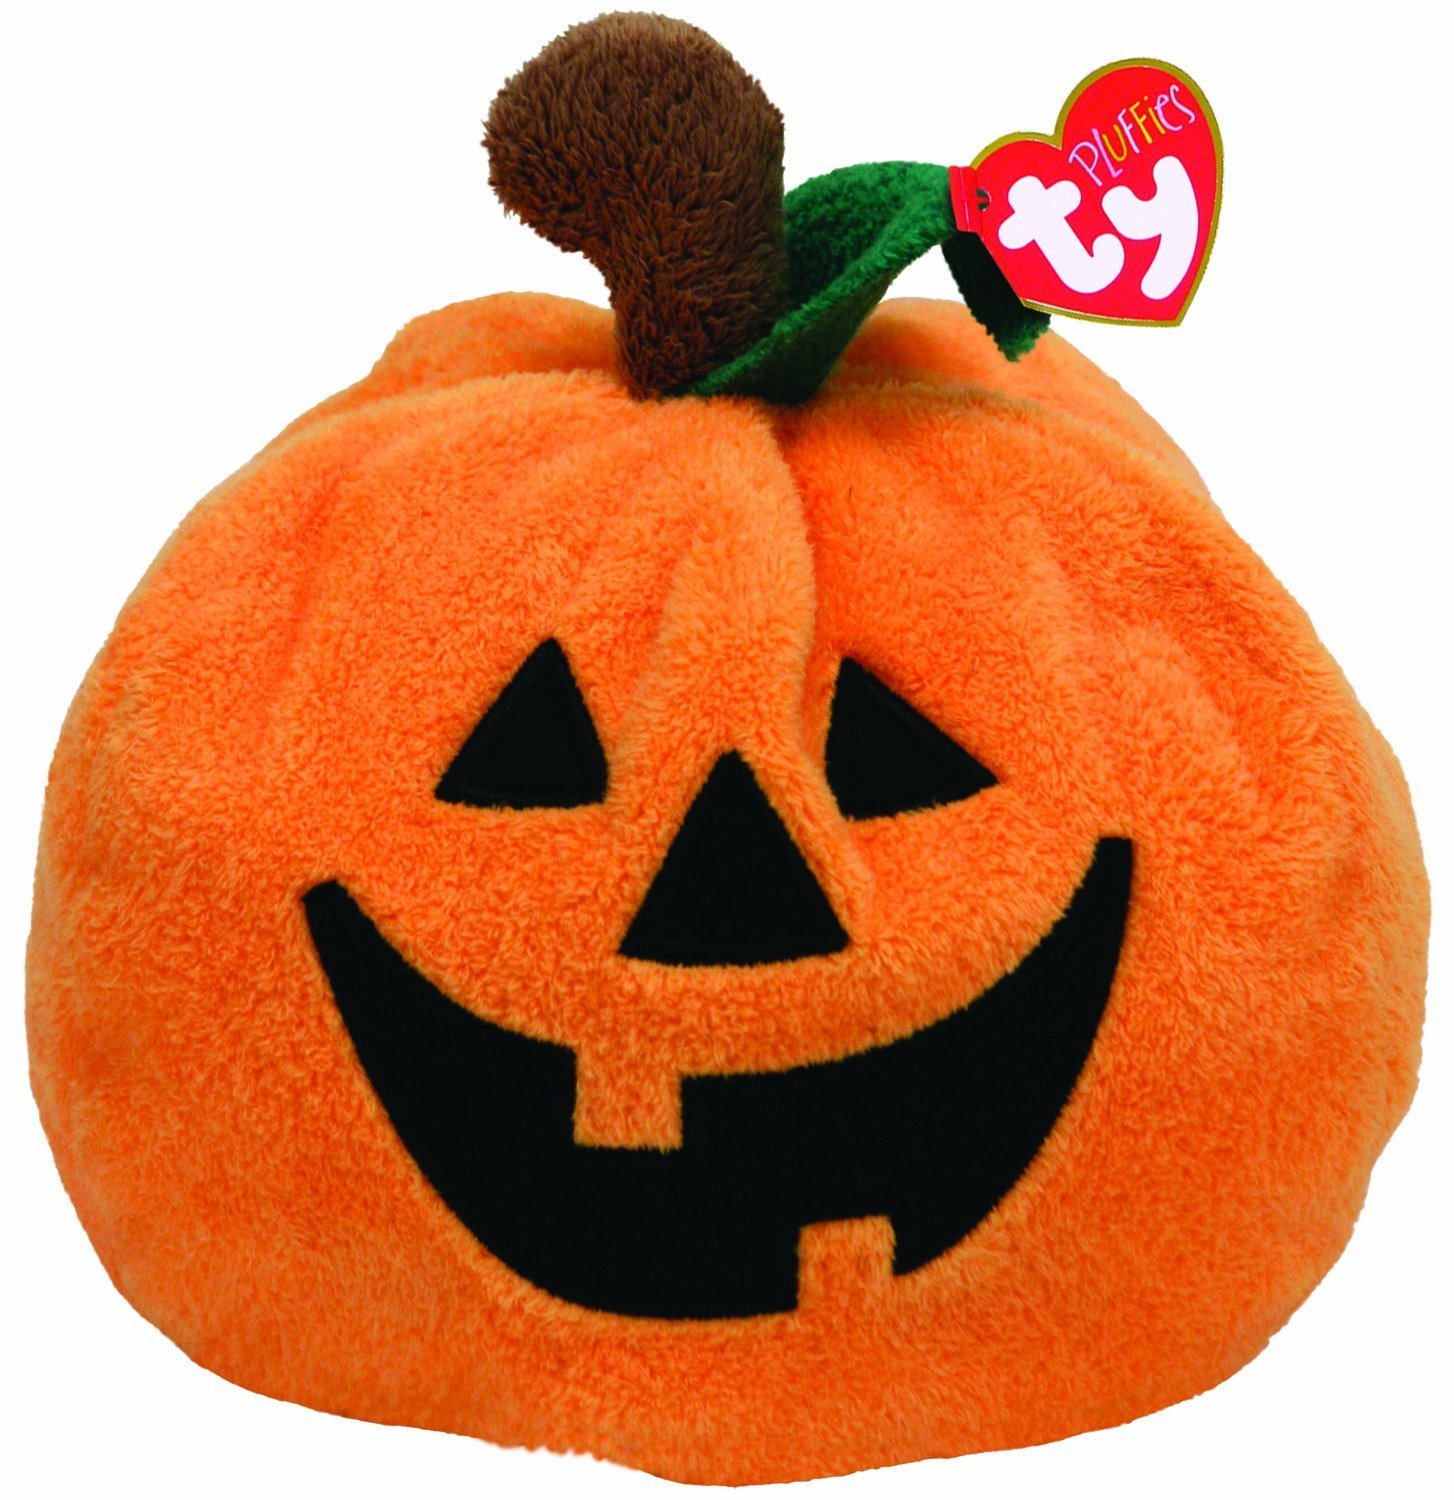 Gilbert Pumpkin Toy: Amazon.co.uk: Toys & Games